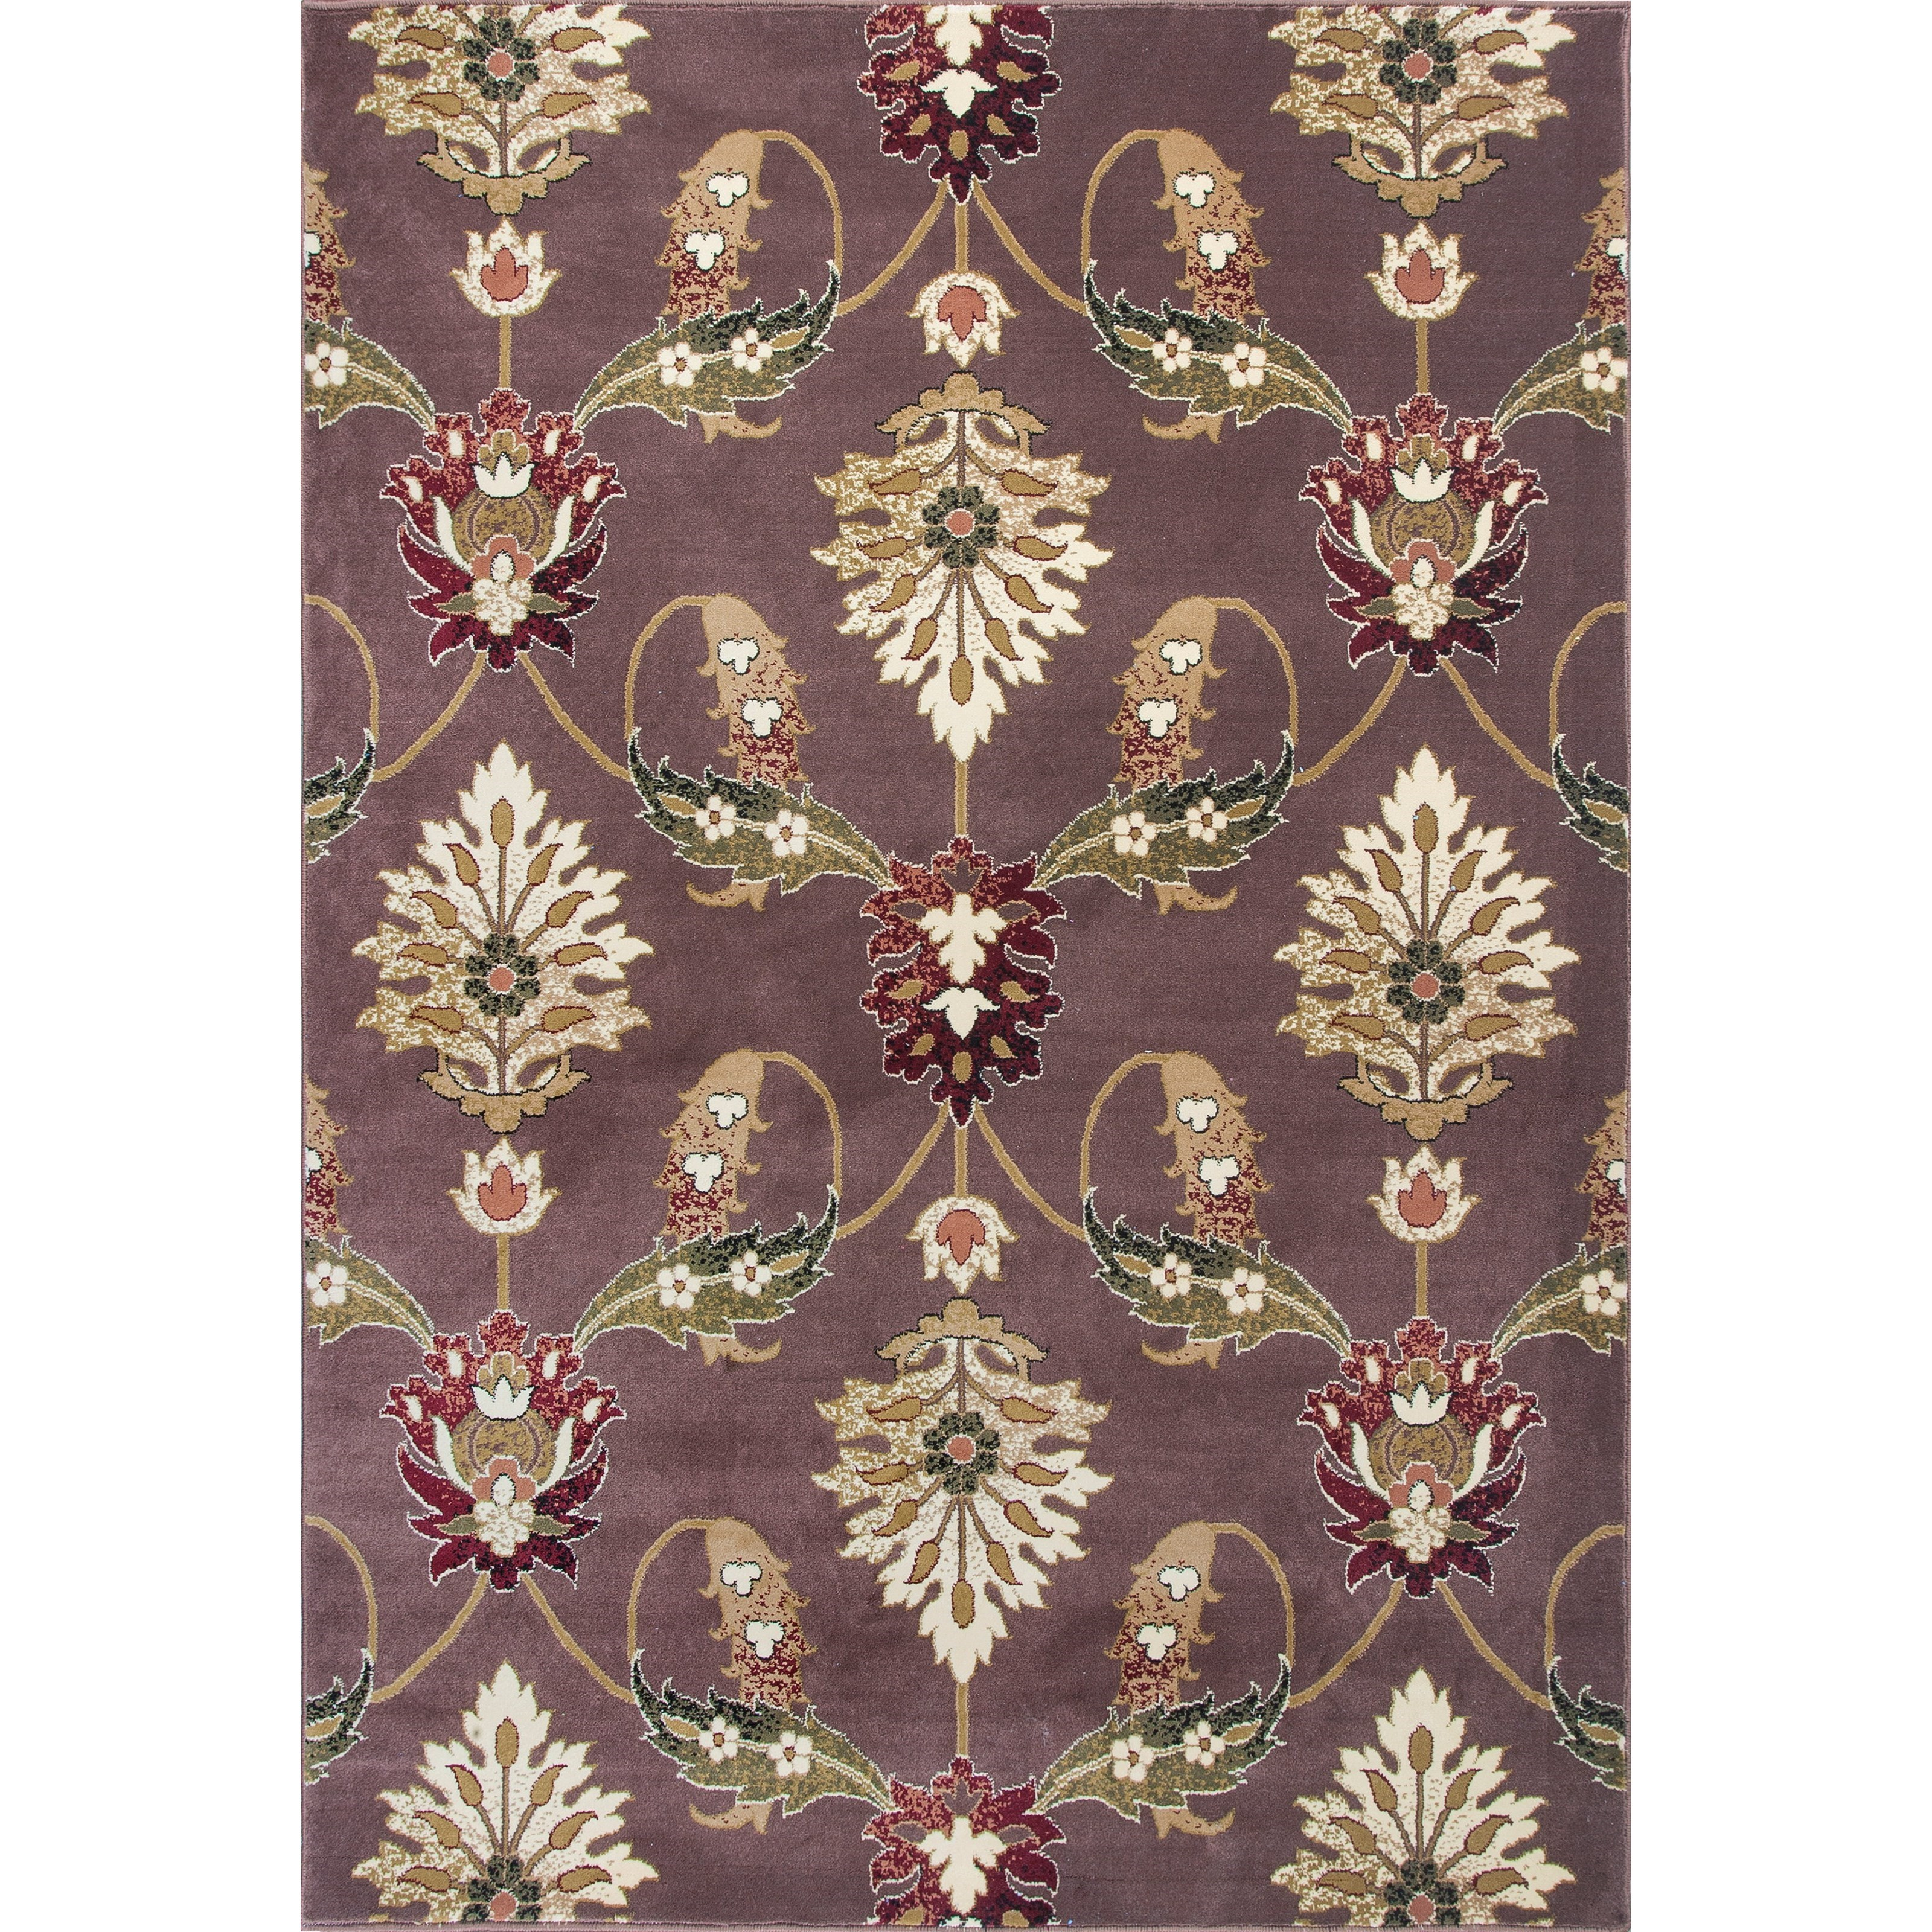 "Cambridge 5'3"" X 7'7"" Plum Palazzo Area Rug by Kas at Wilson's Furniture"